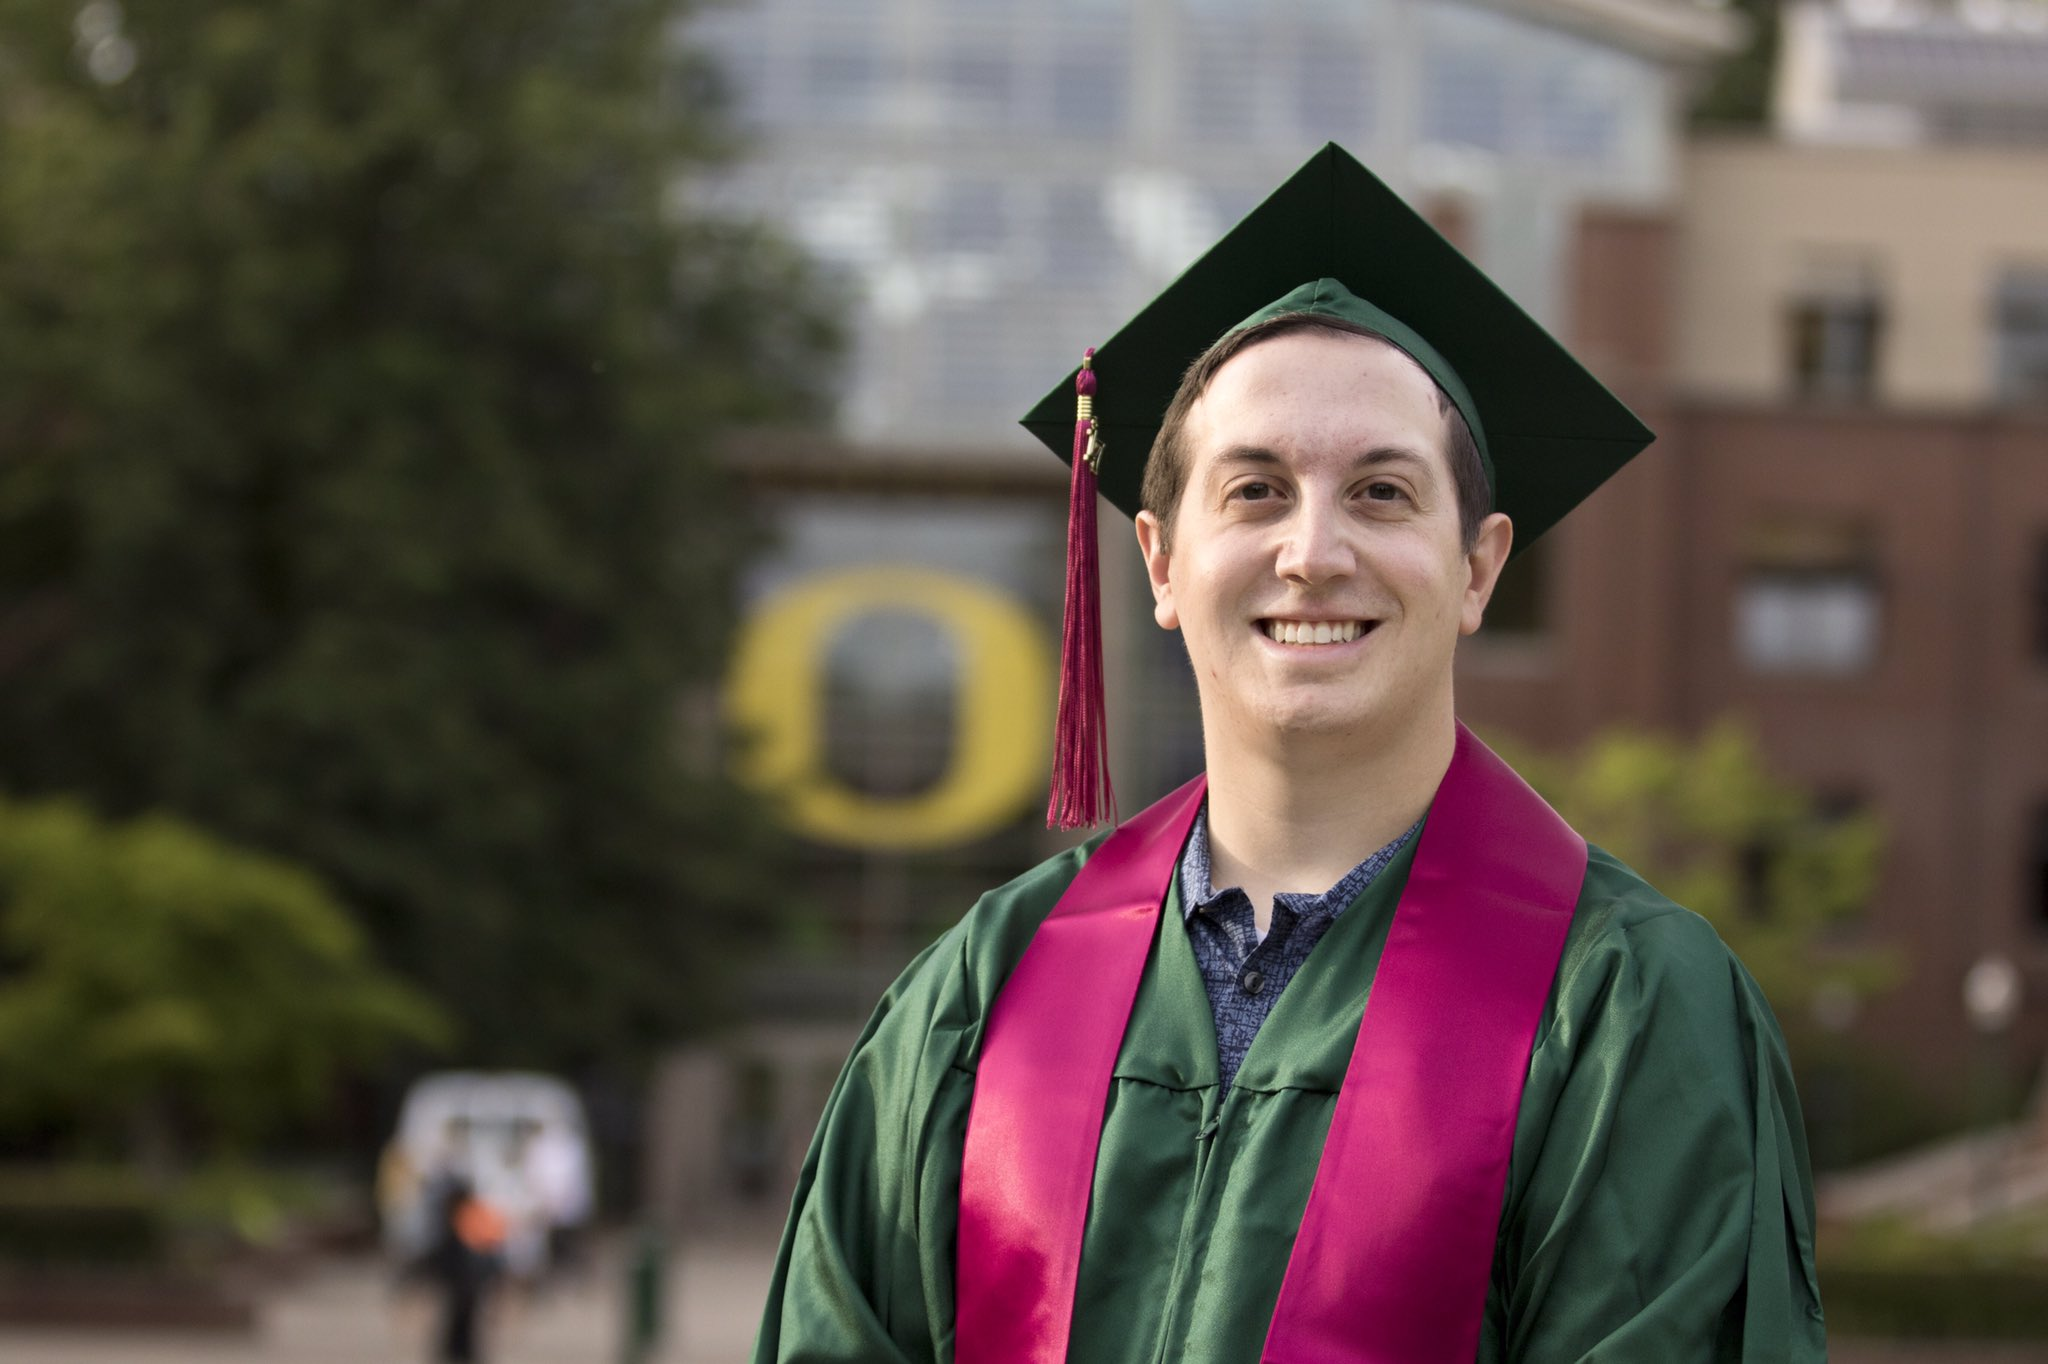 Well this day sure came quickly. Graduation today, leaving tomorrow, and starting work on Tuesday. #DuckGrad17 https://t.co/LiQVKH1tUc